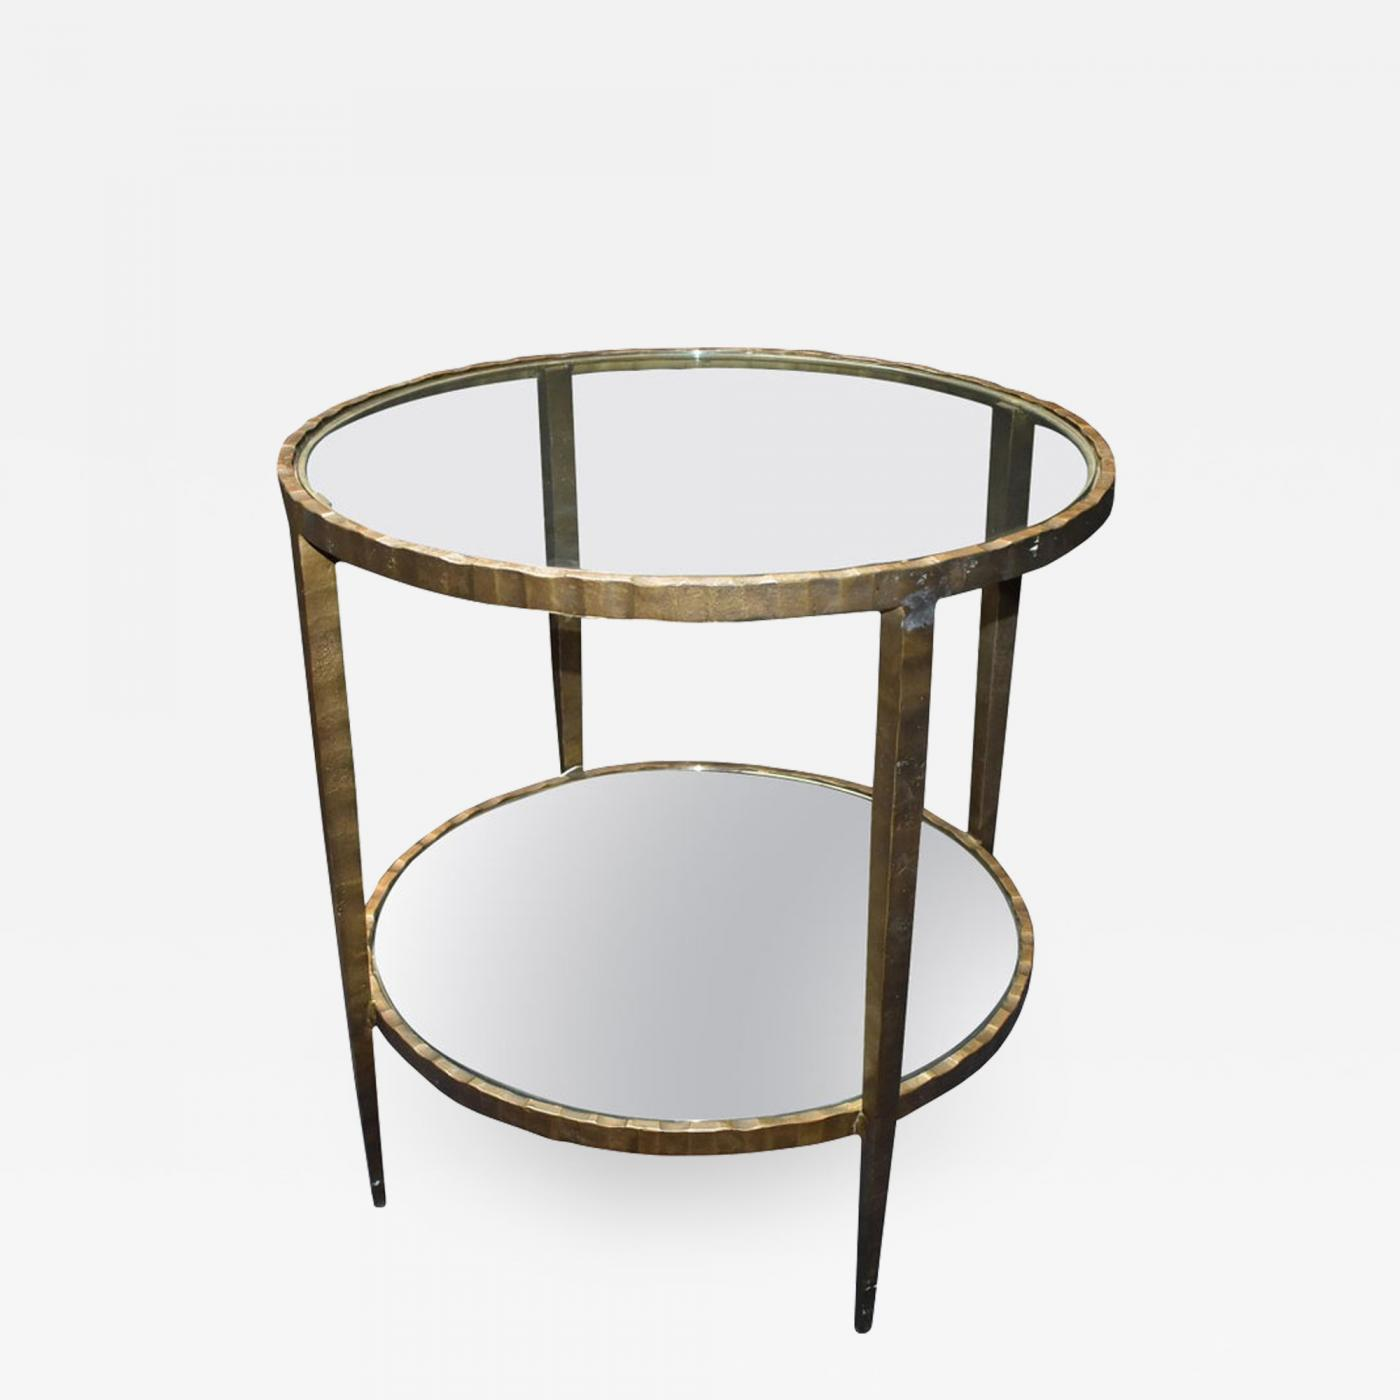 Miraculous 1960S Hammered Iron Two Tiers Round Side Table Bralicious Painted Fabric Chair Ideas Braliciousco